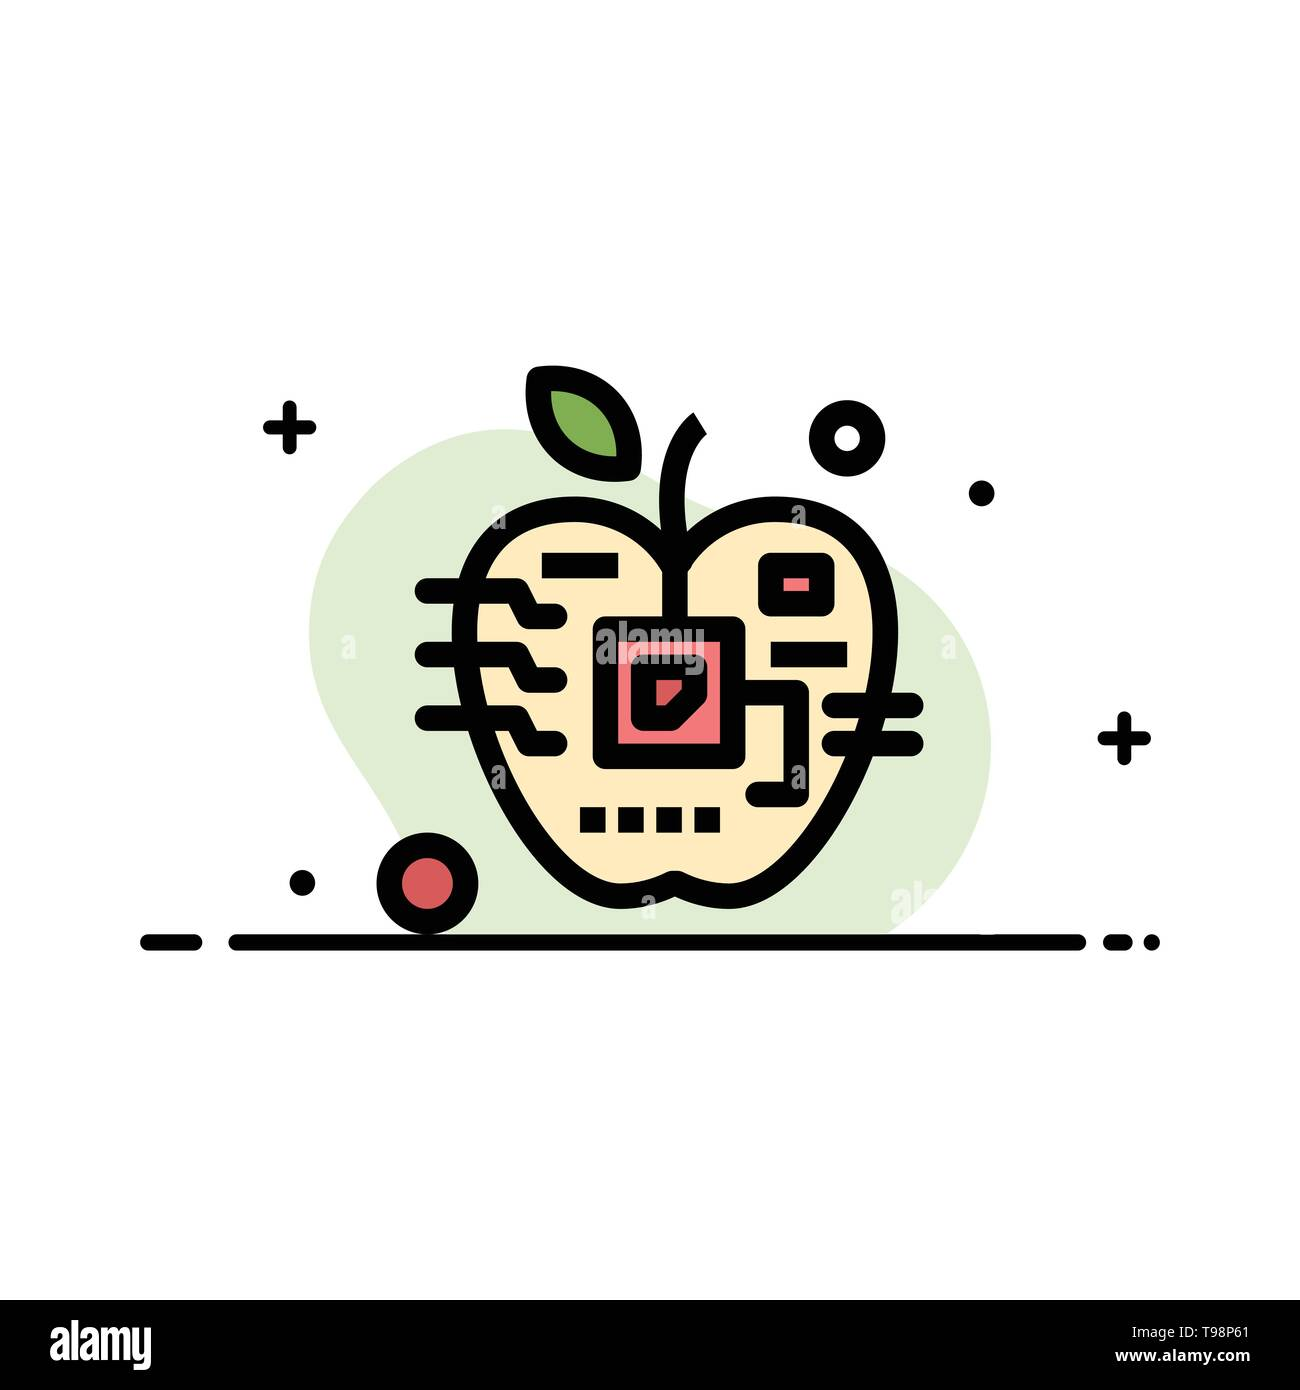 Apple, Artificial, Biology, Digital, Electronic  Business Flat Line Filled Icon Vector Banner Template - Stock Image